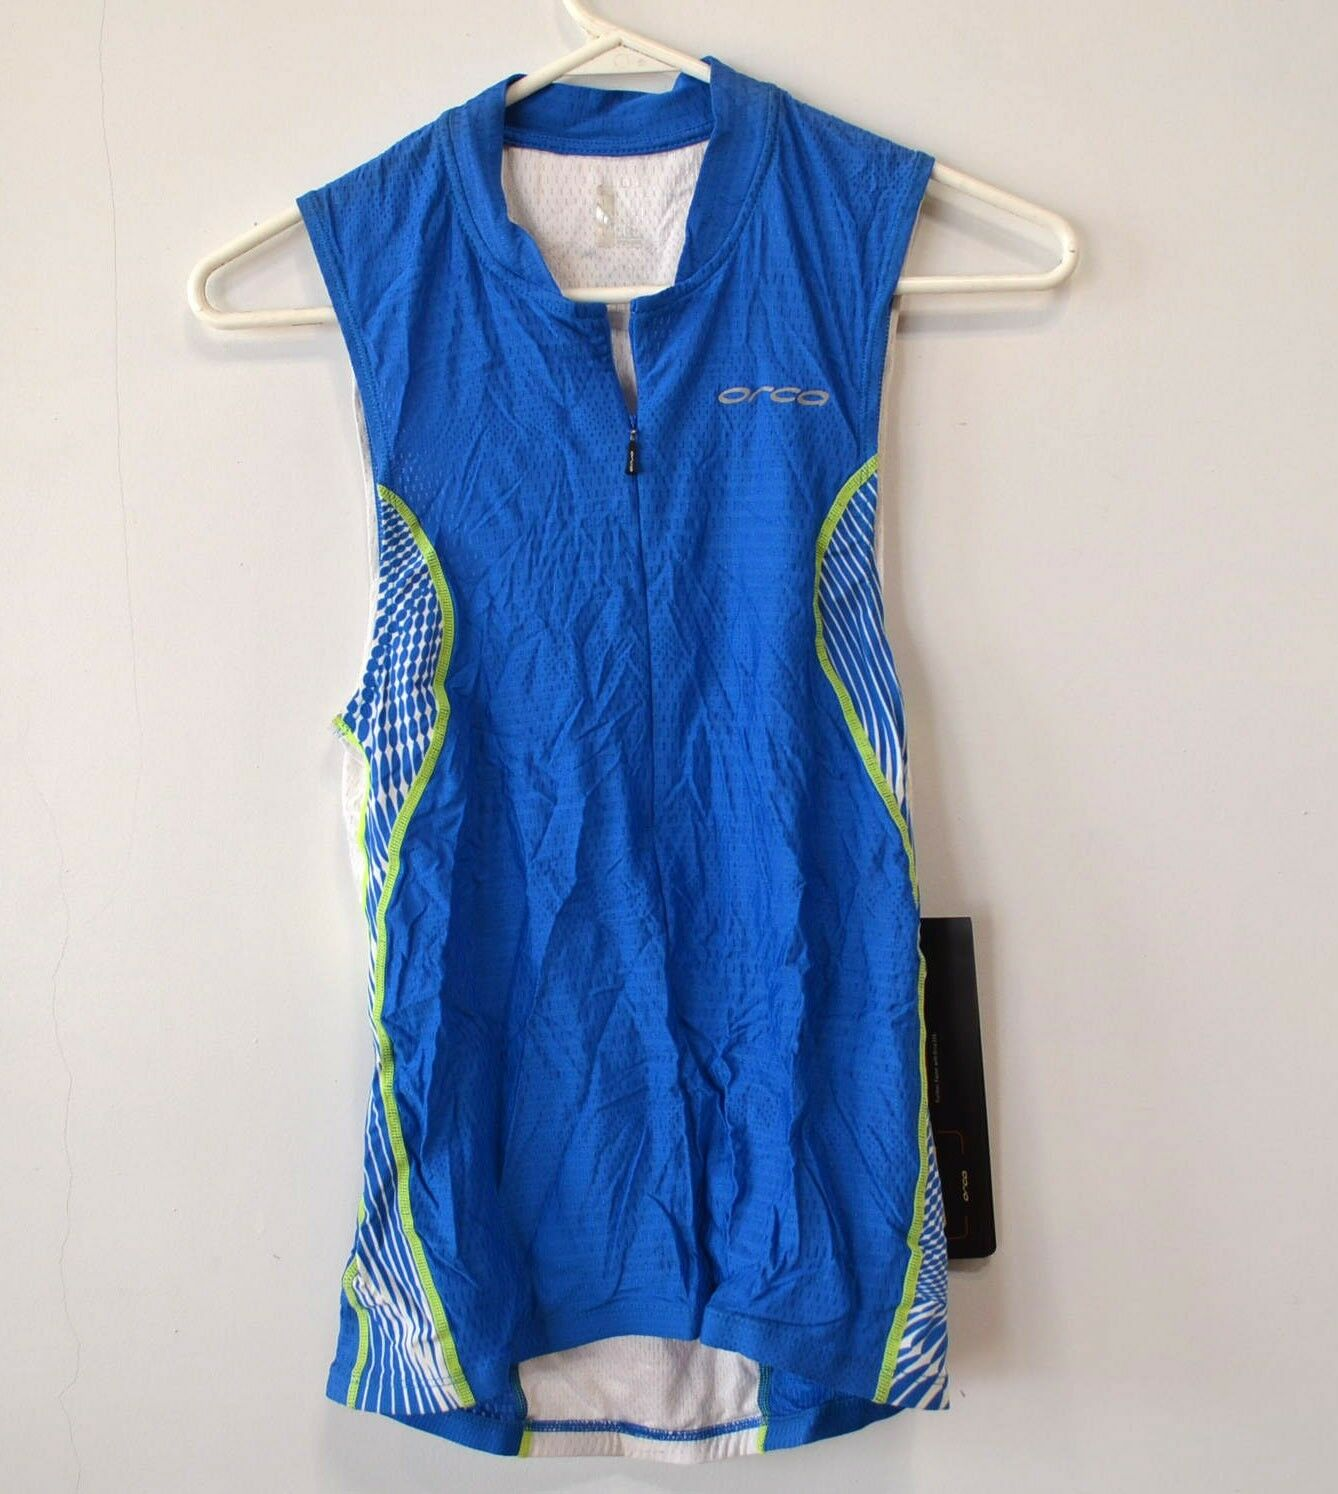 Orca 226 Tri Tank MD bluee triathalon cycling running